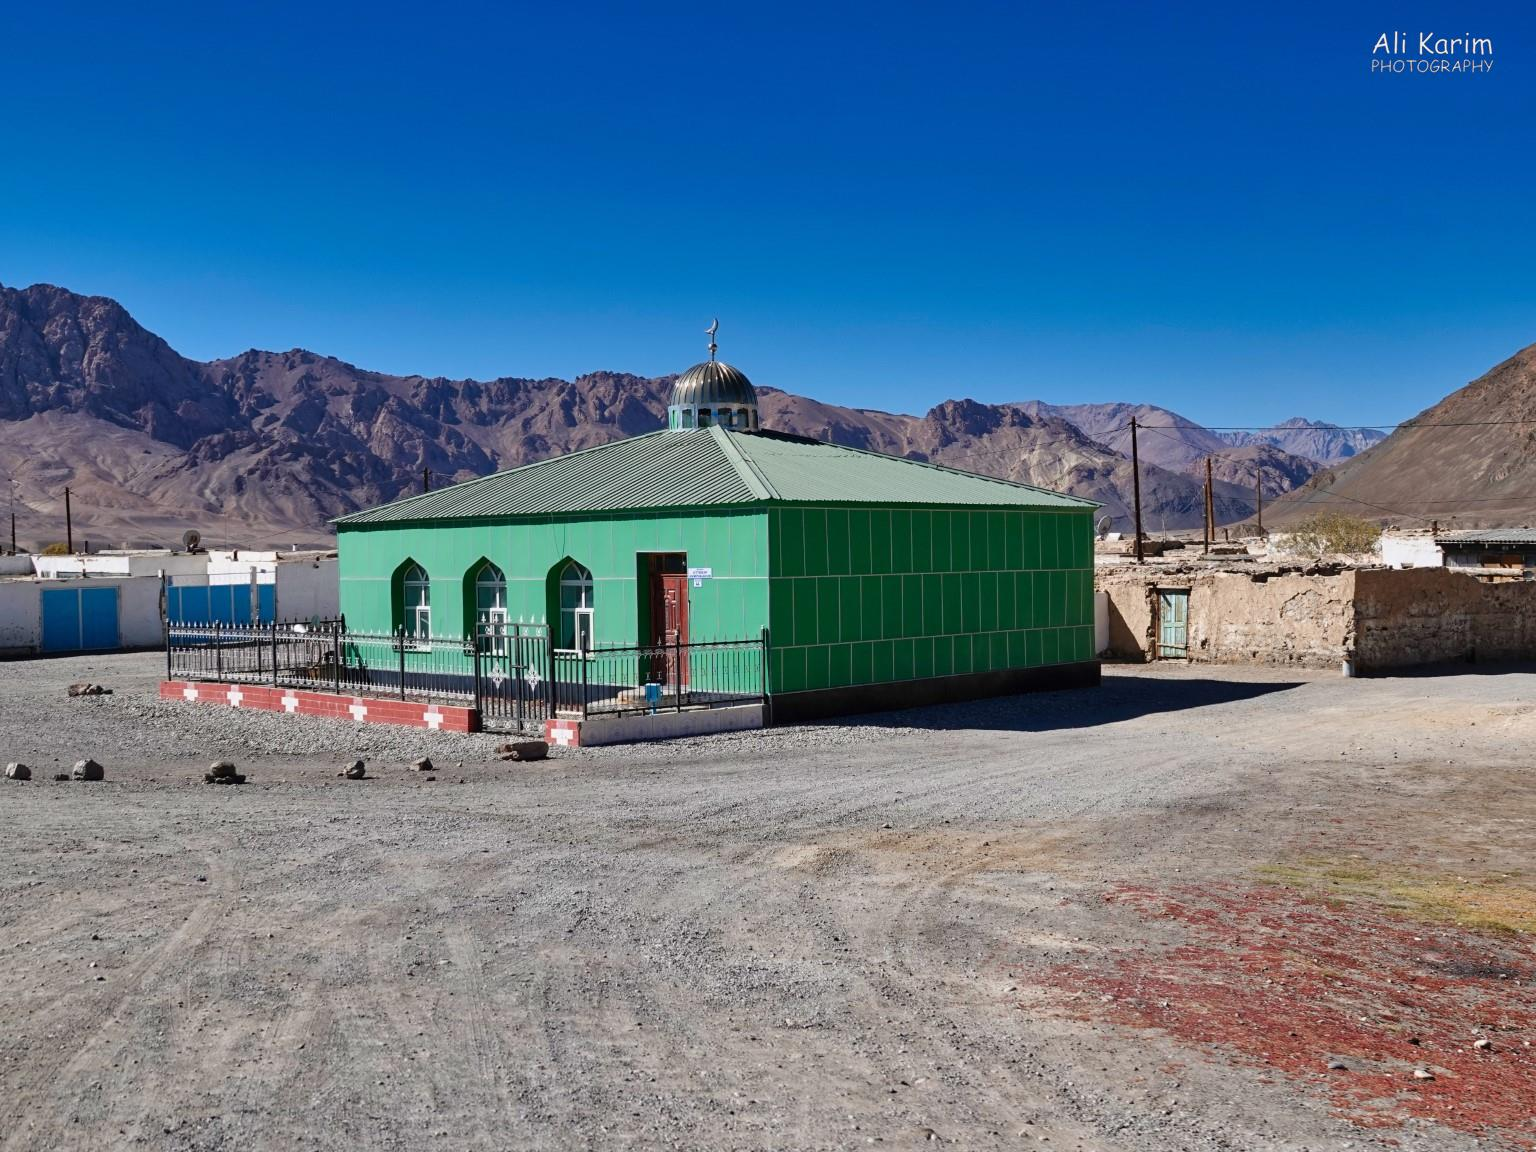 More Murghab & Alichur, Tajikistan, Interesting Mosque on the southern part of the town as we were leaving